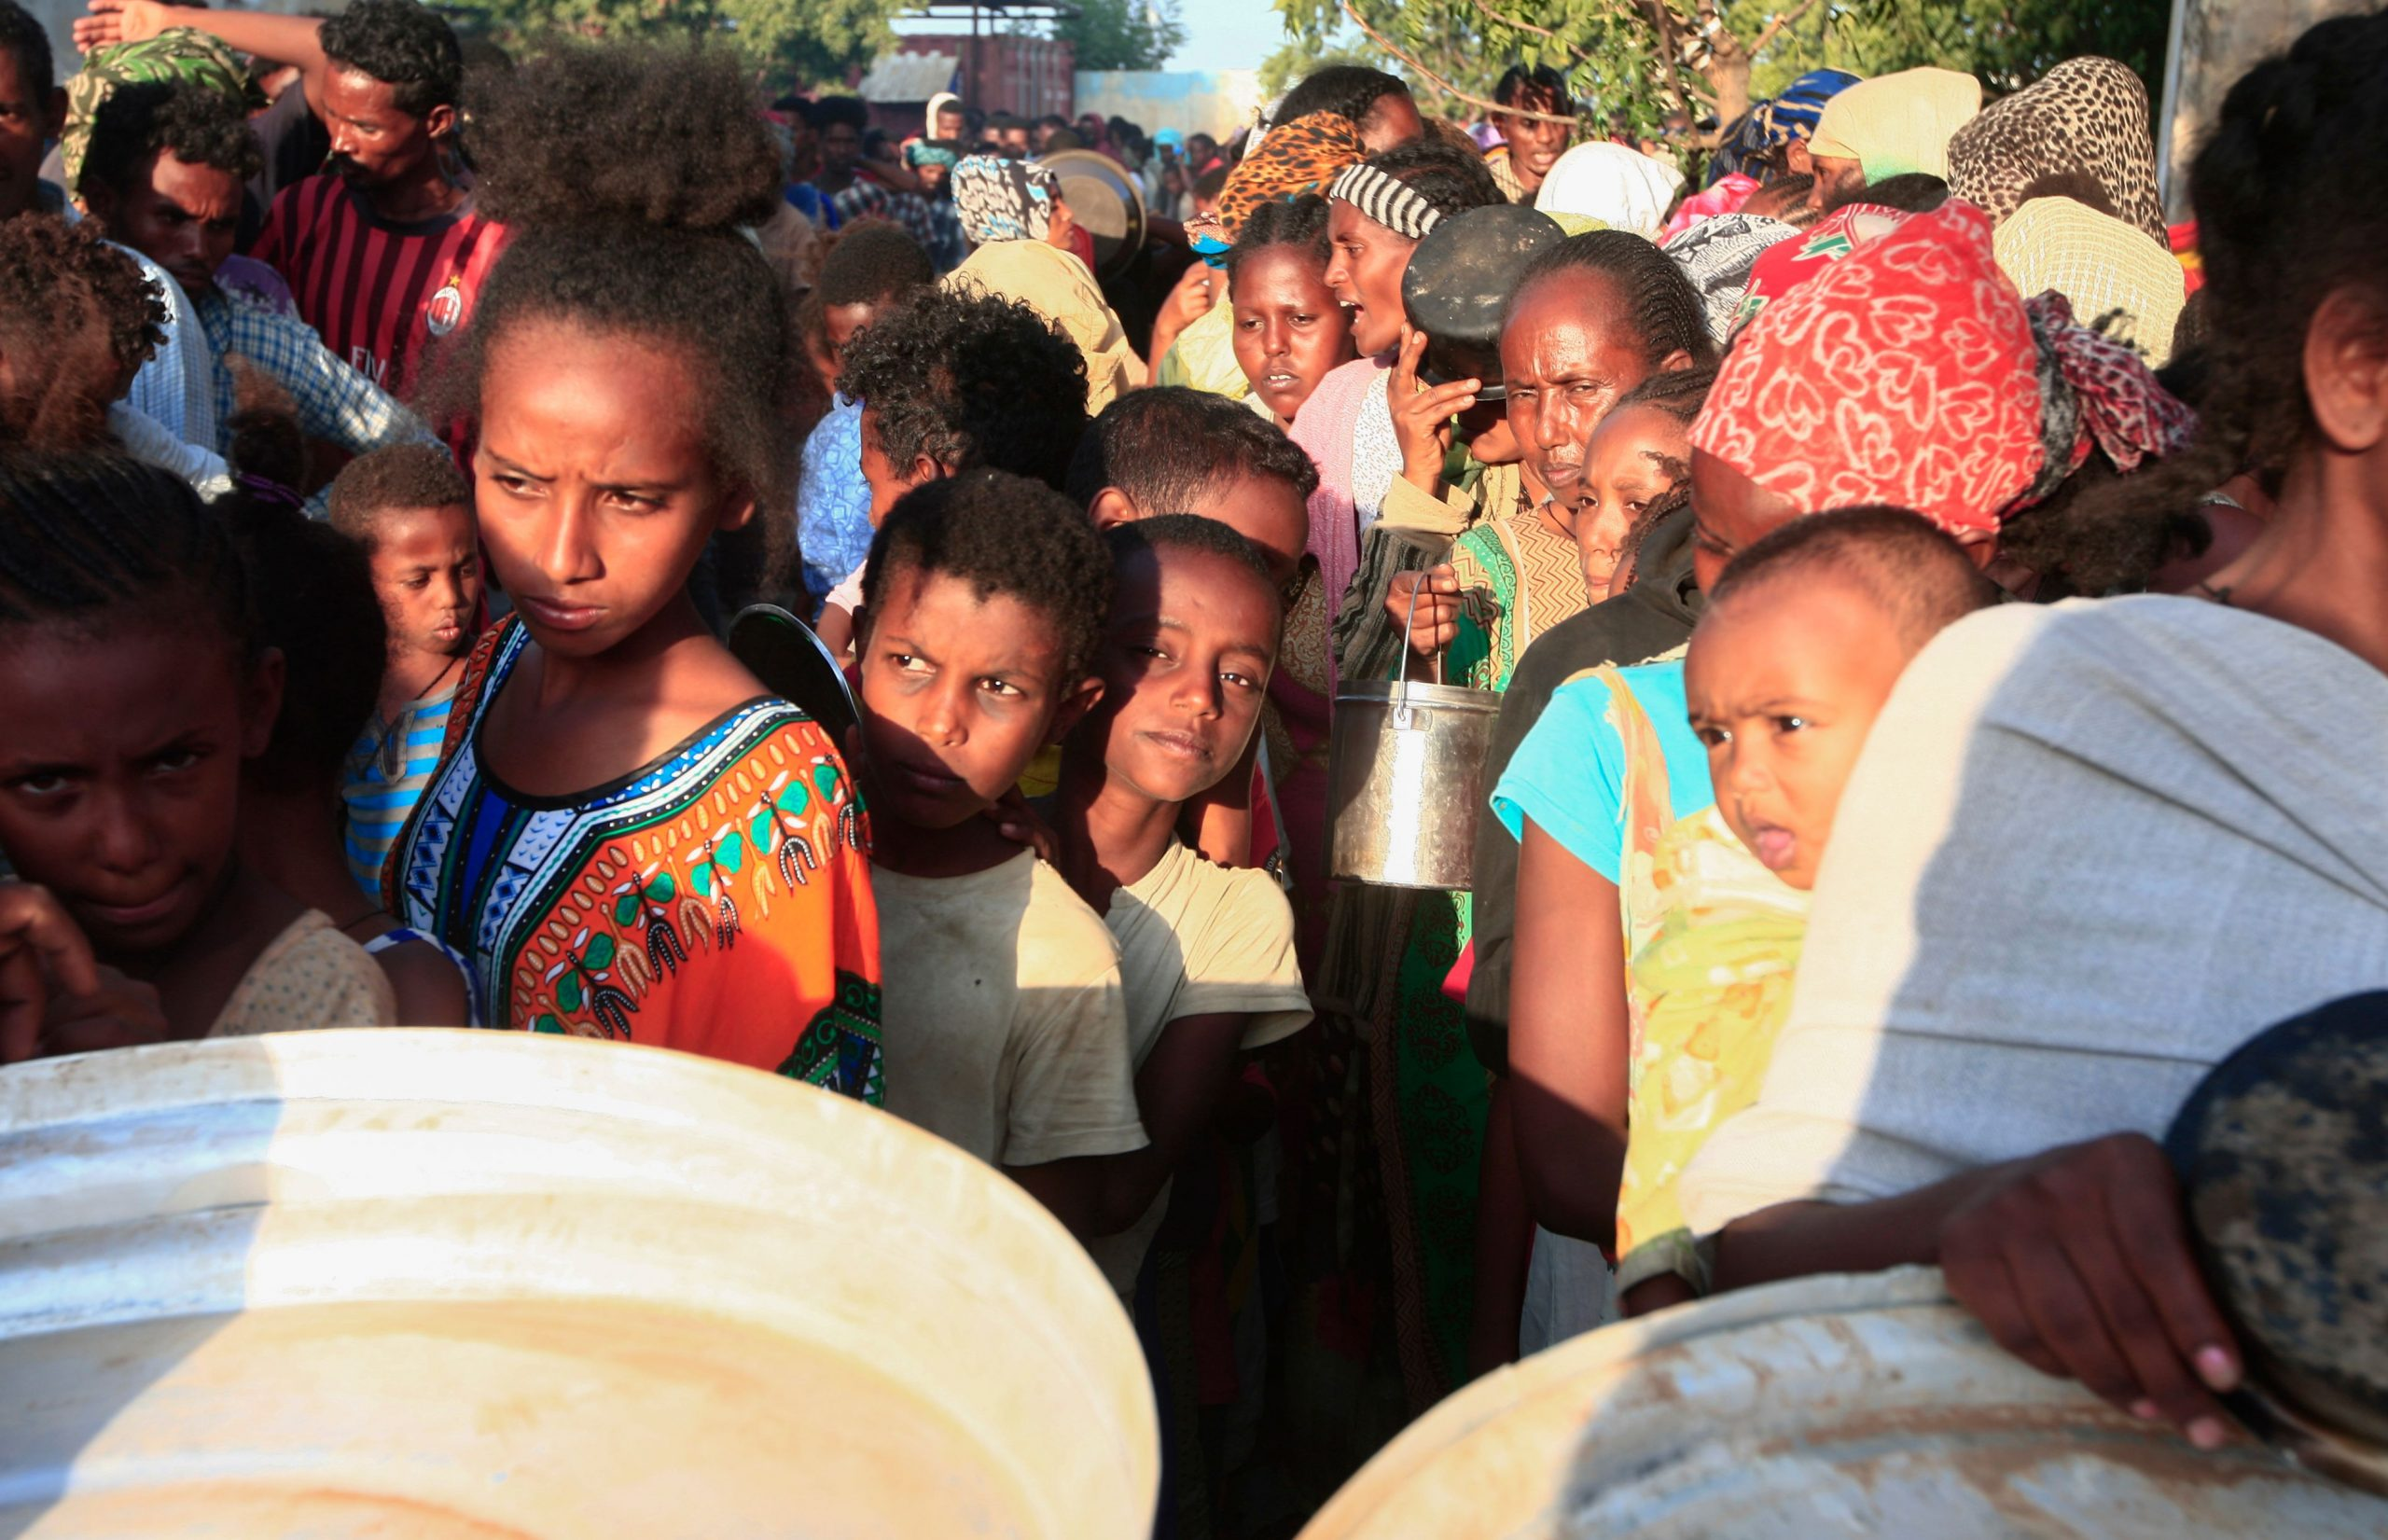 Ethiopian Refugees from Tigray in Camps in Sudan - Photo EBRAHIM HAMID/AFP via Getty Images